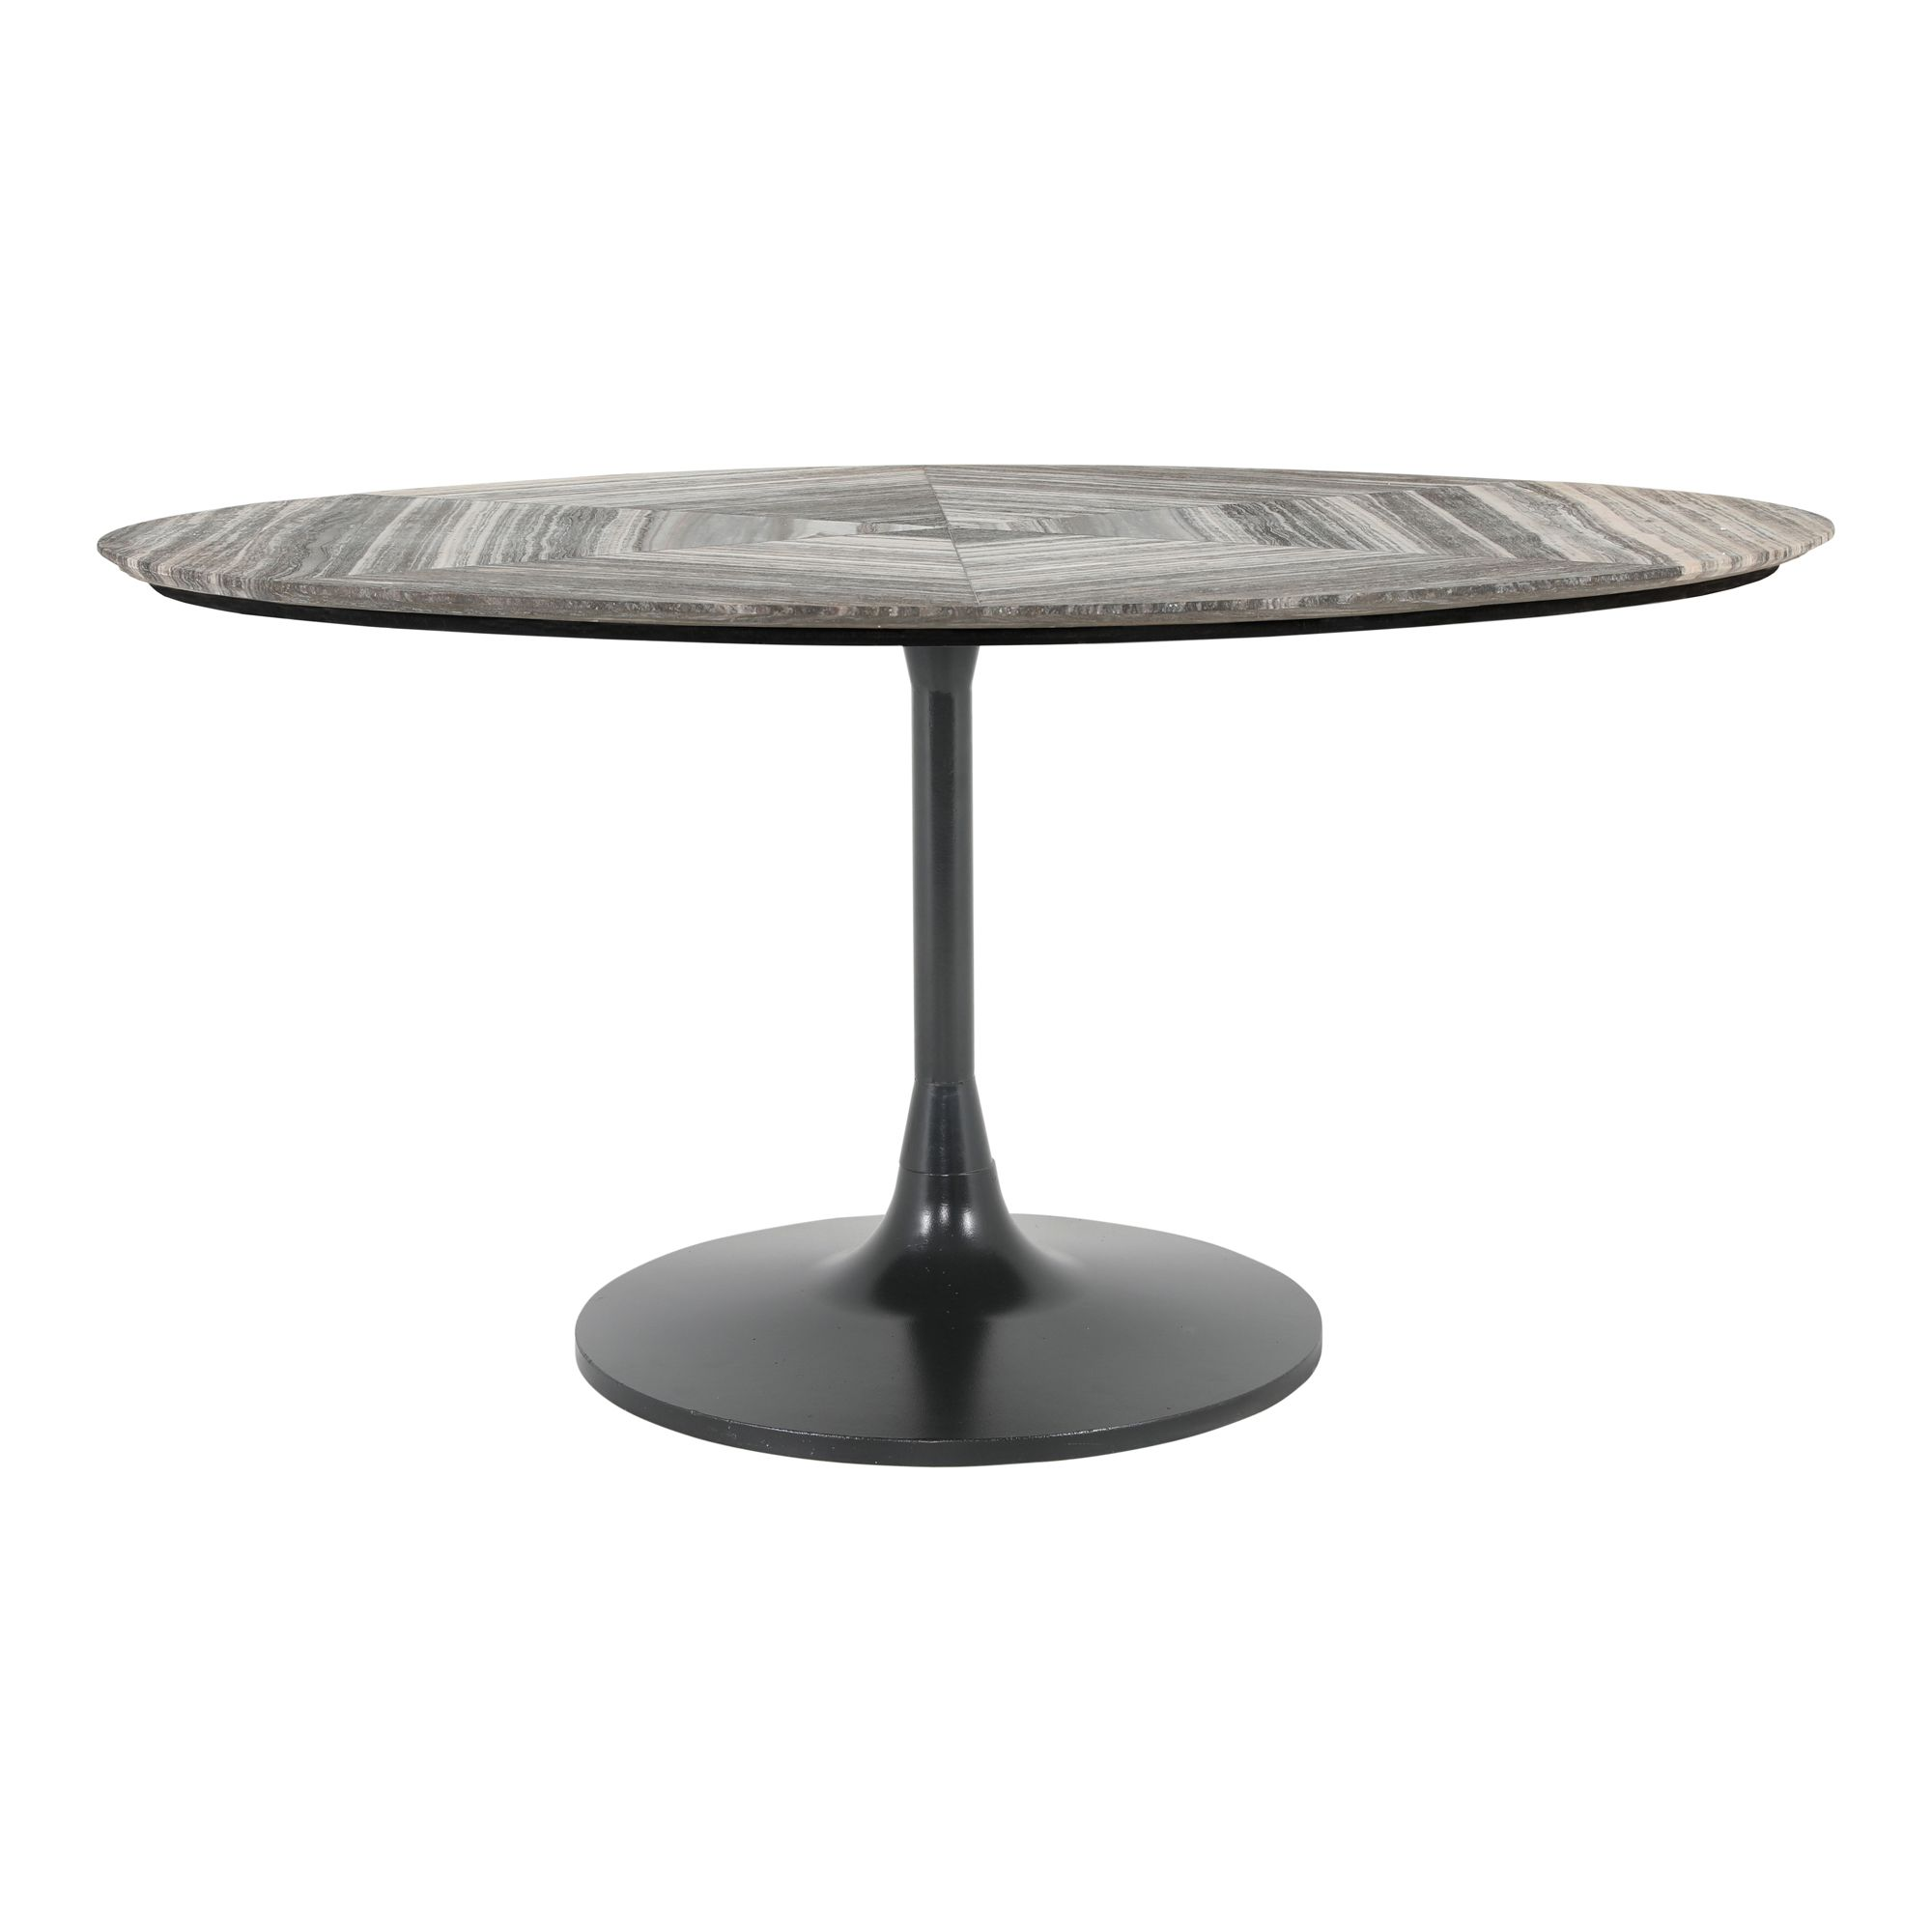 Nyles Oval Marble Dining Table Moe S Wholesale In 2020 Dining Table Marble Oval Marble Dining Tables Marble Dining